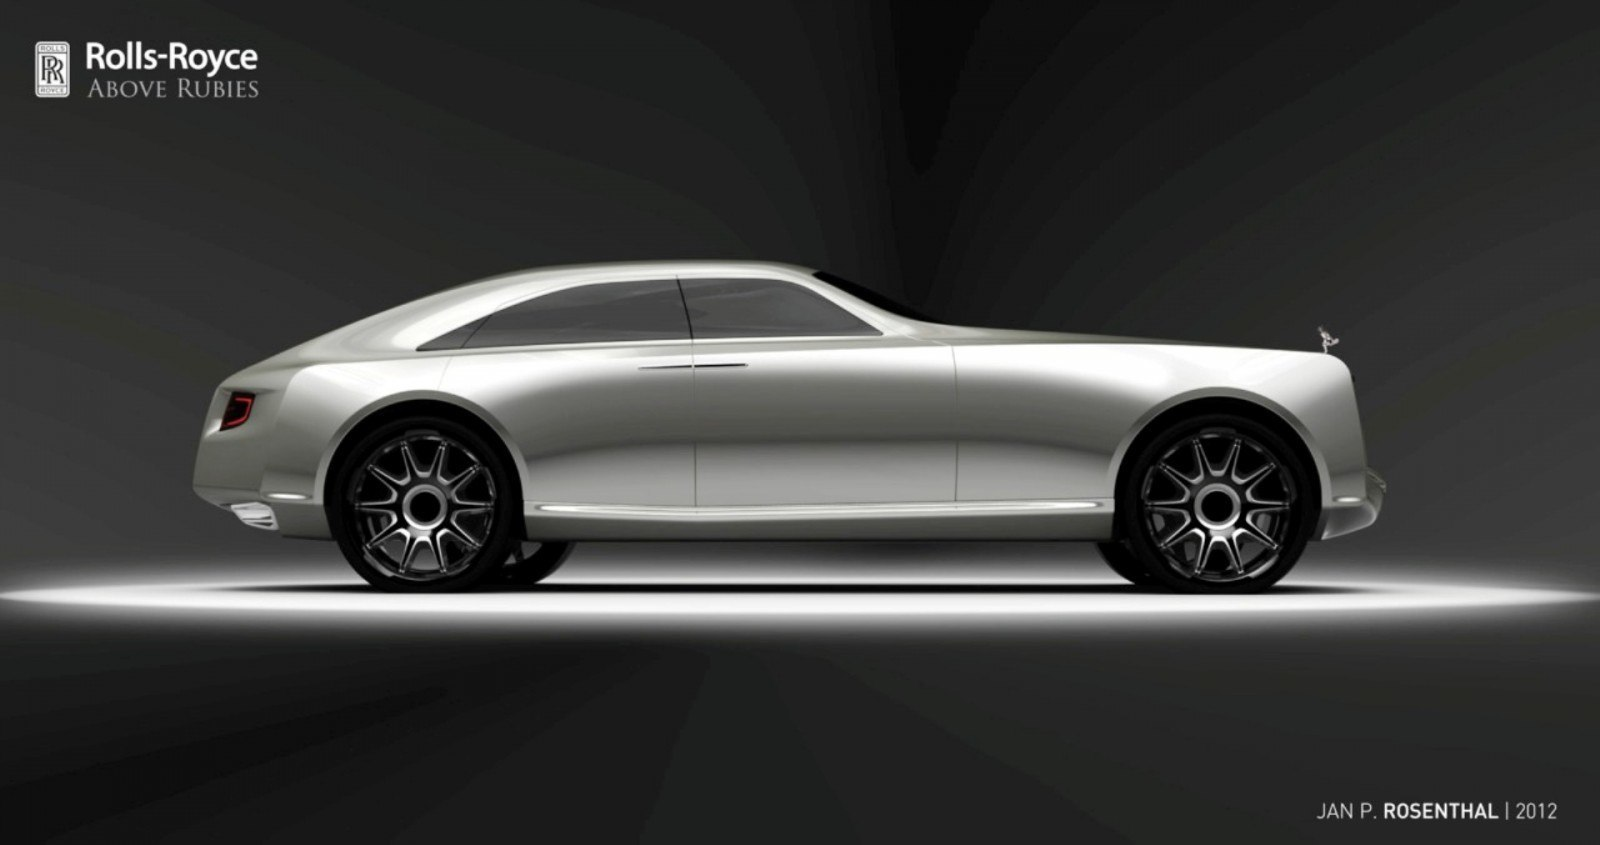 Design Talent Showcase - Jan Rosenthal's 2023 Rolls-Royce Concept Wins Official RCA Contest 1